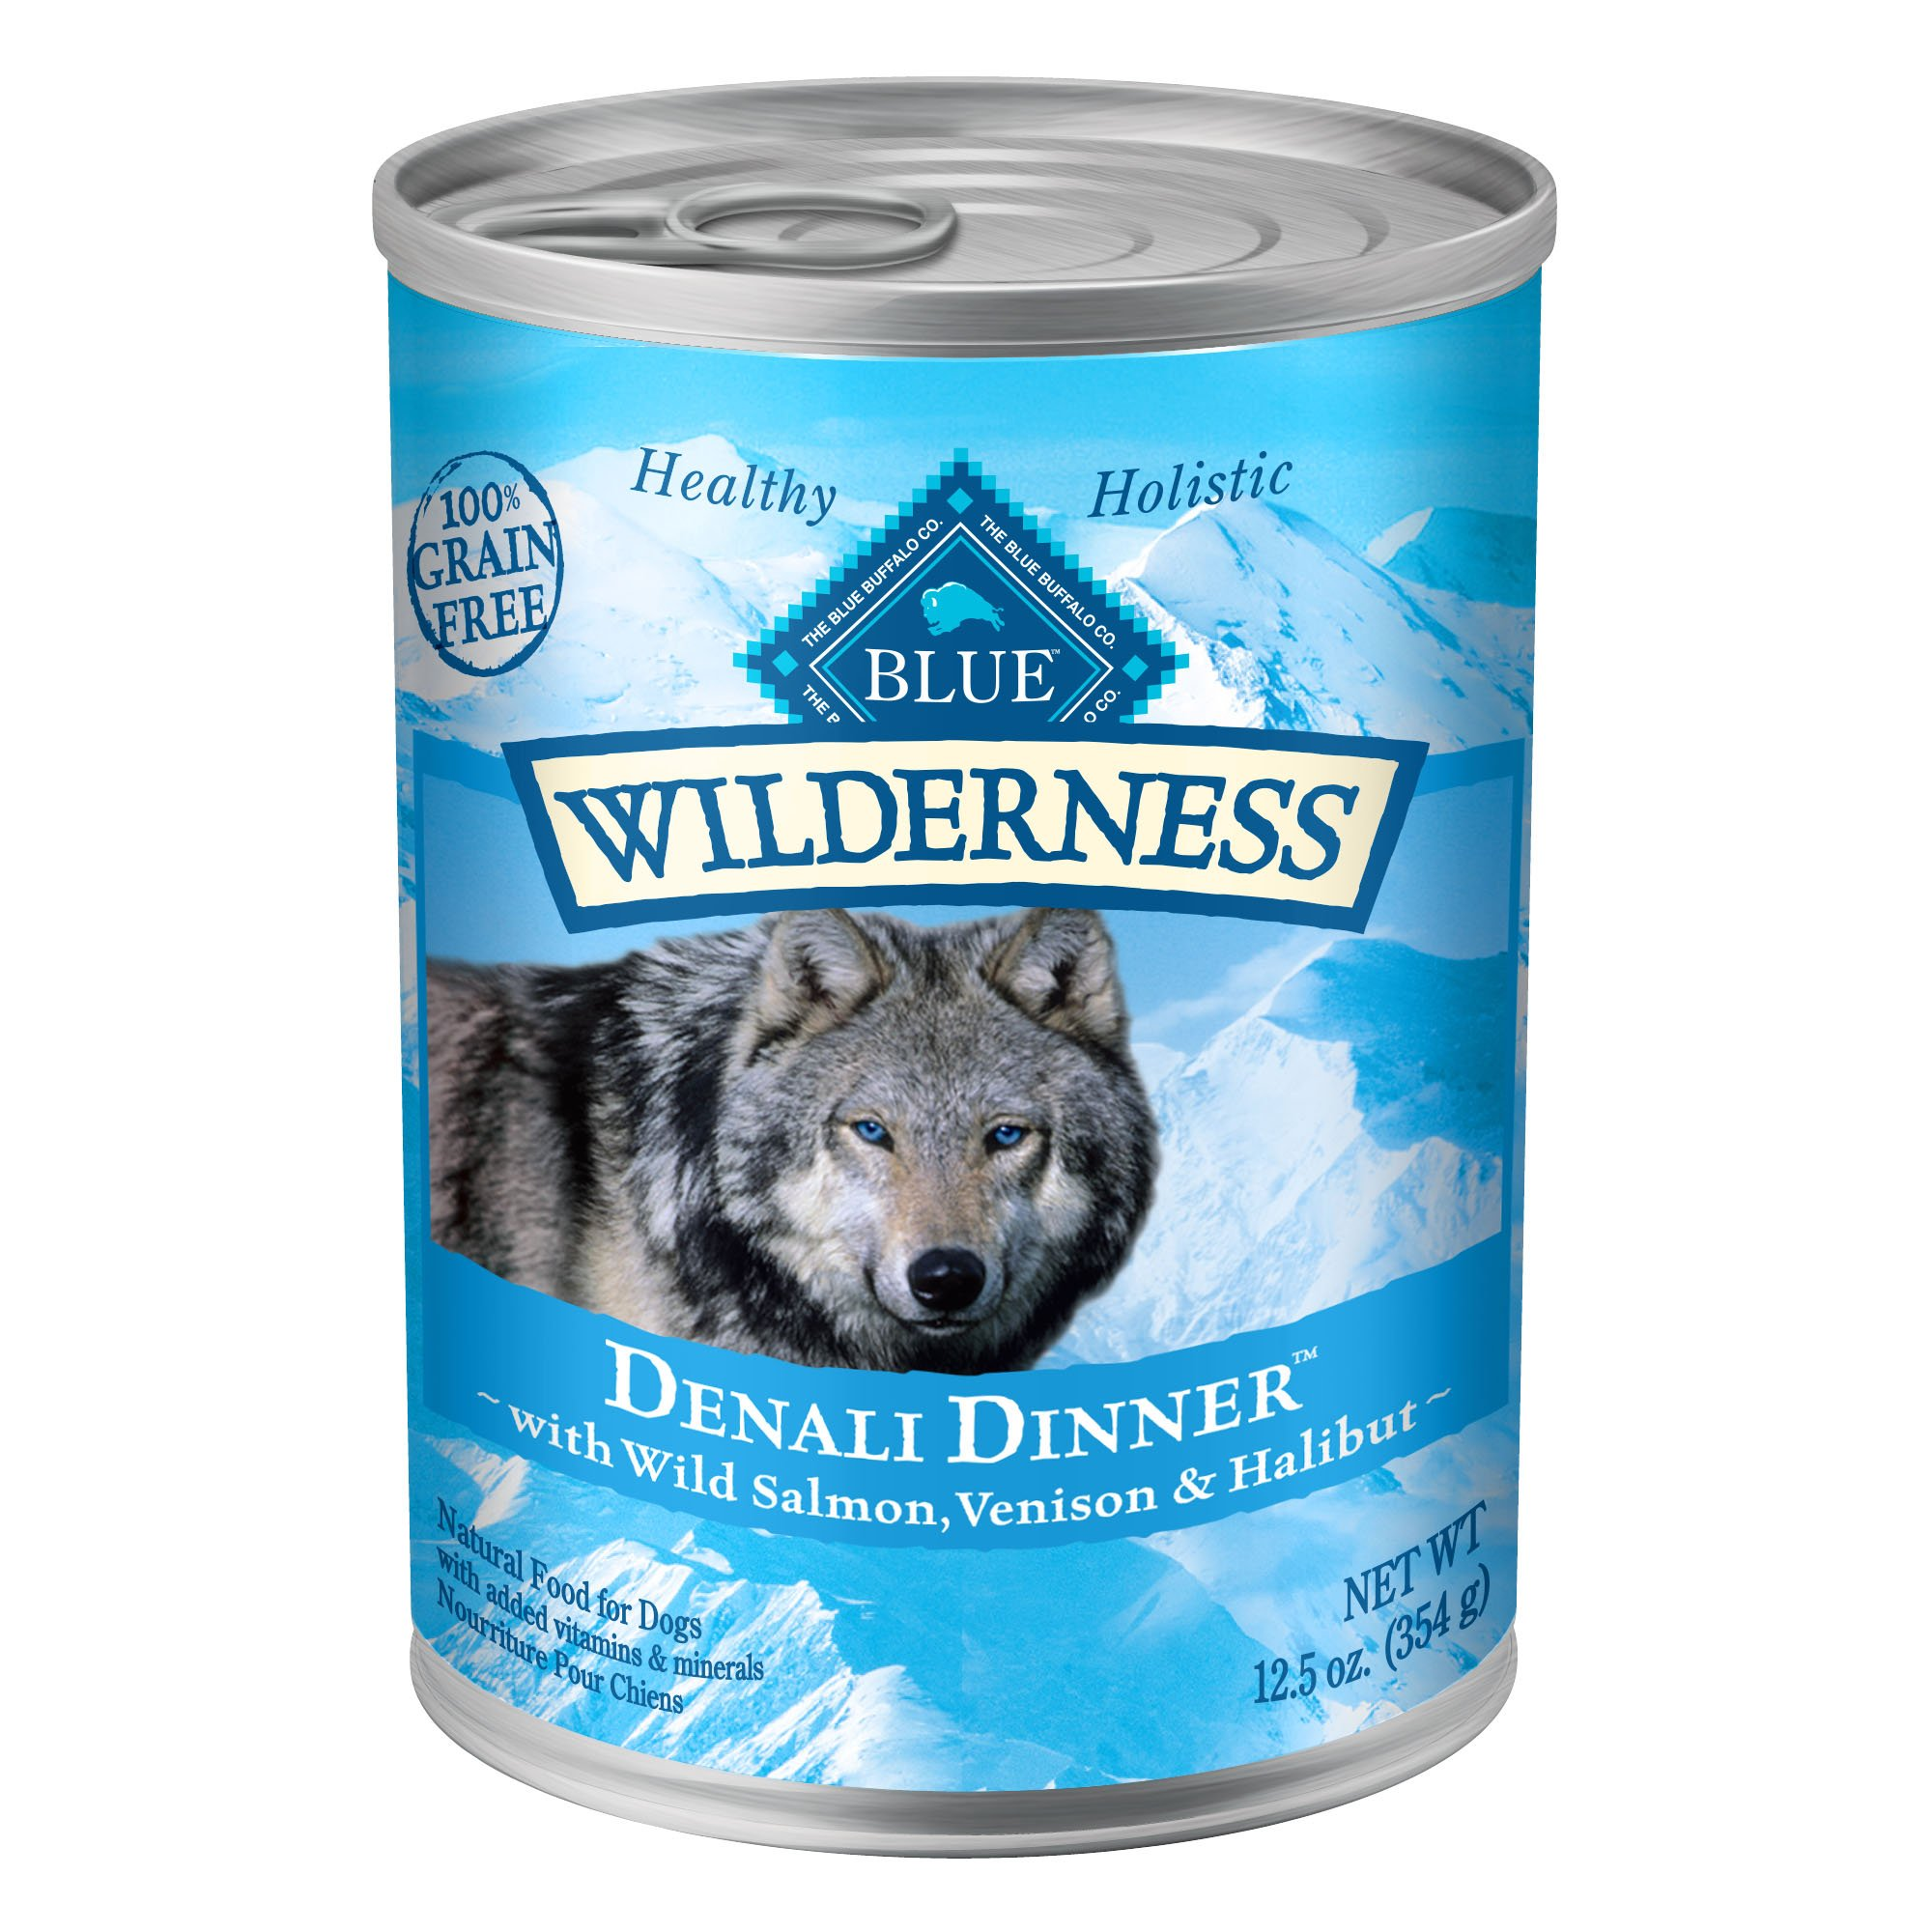 Wilderness Blue Buffalo Denali Dinner Dog Food